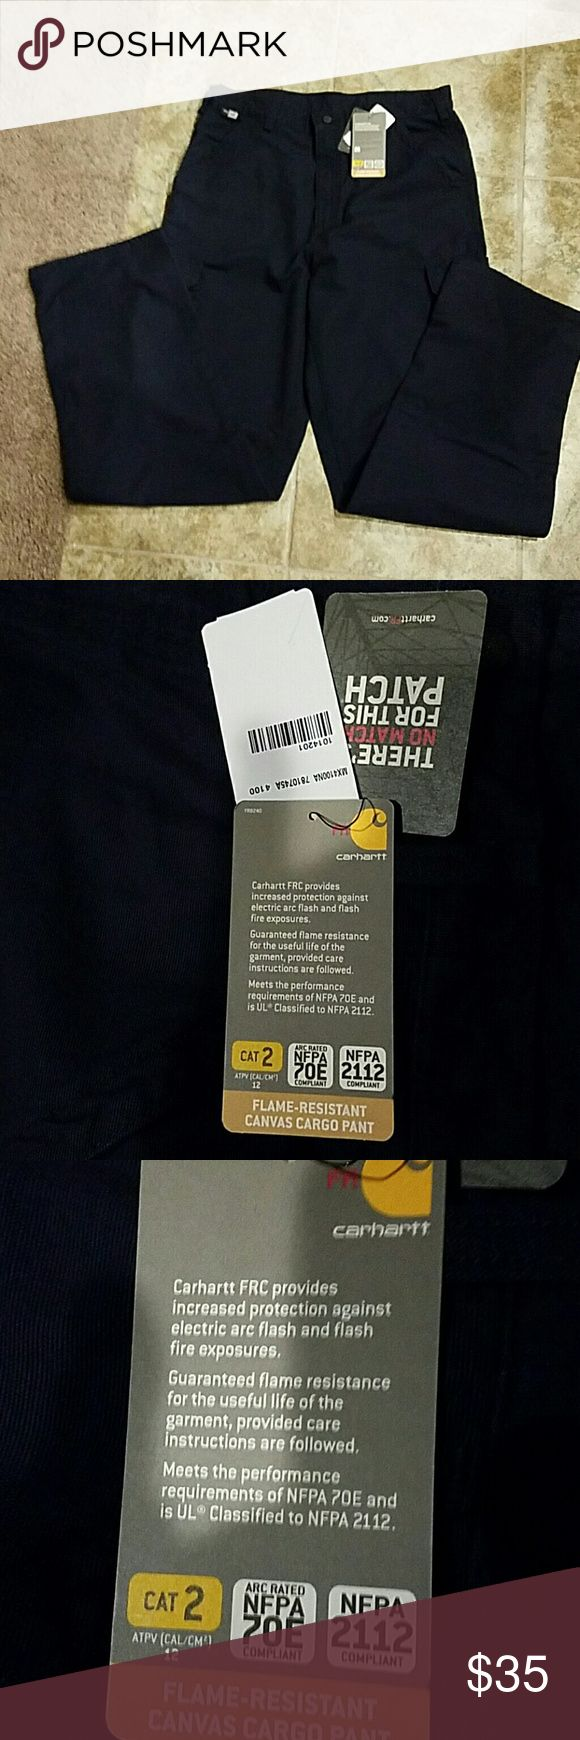 NWT Carhartt cargo pants NWT Dark blue Carhartt fire resistant canvas cargo pants. RN# 14808. Size 36 x 34. ...2 front pockets, 2 back pockets, & 2 cargo pockets with metal snaps. Carhartt Pants Cargo